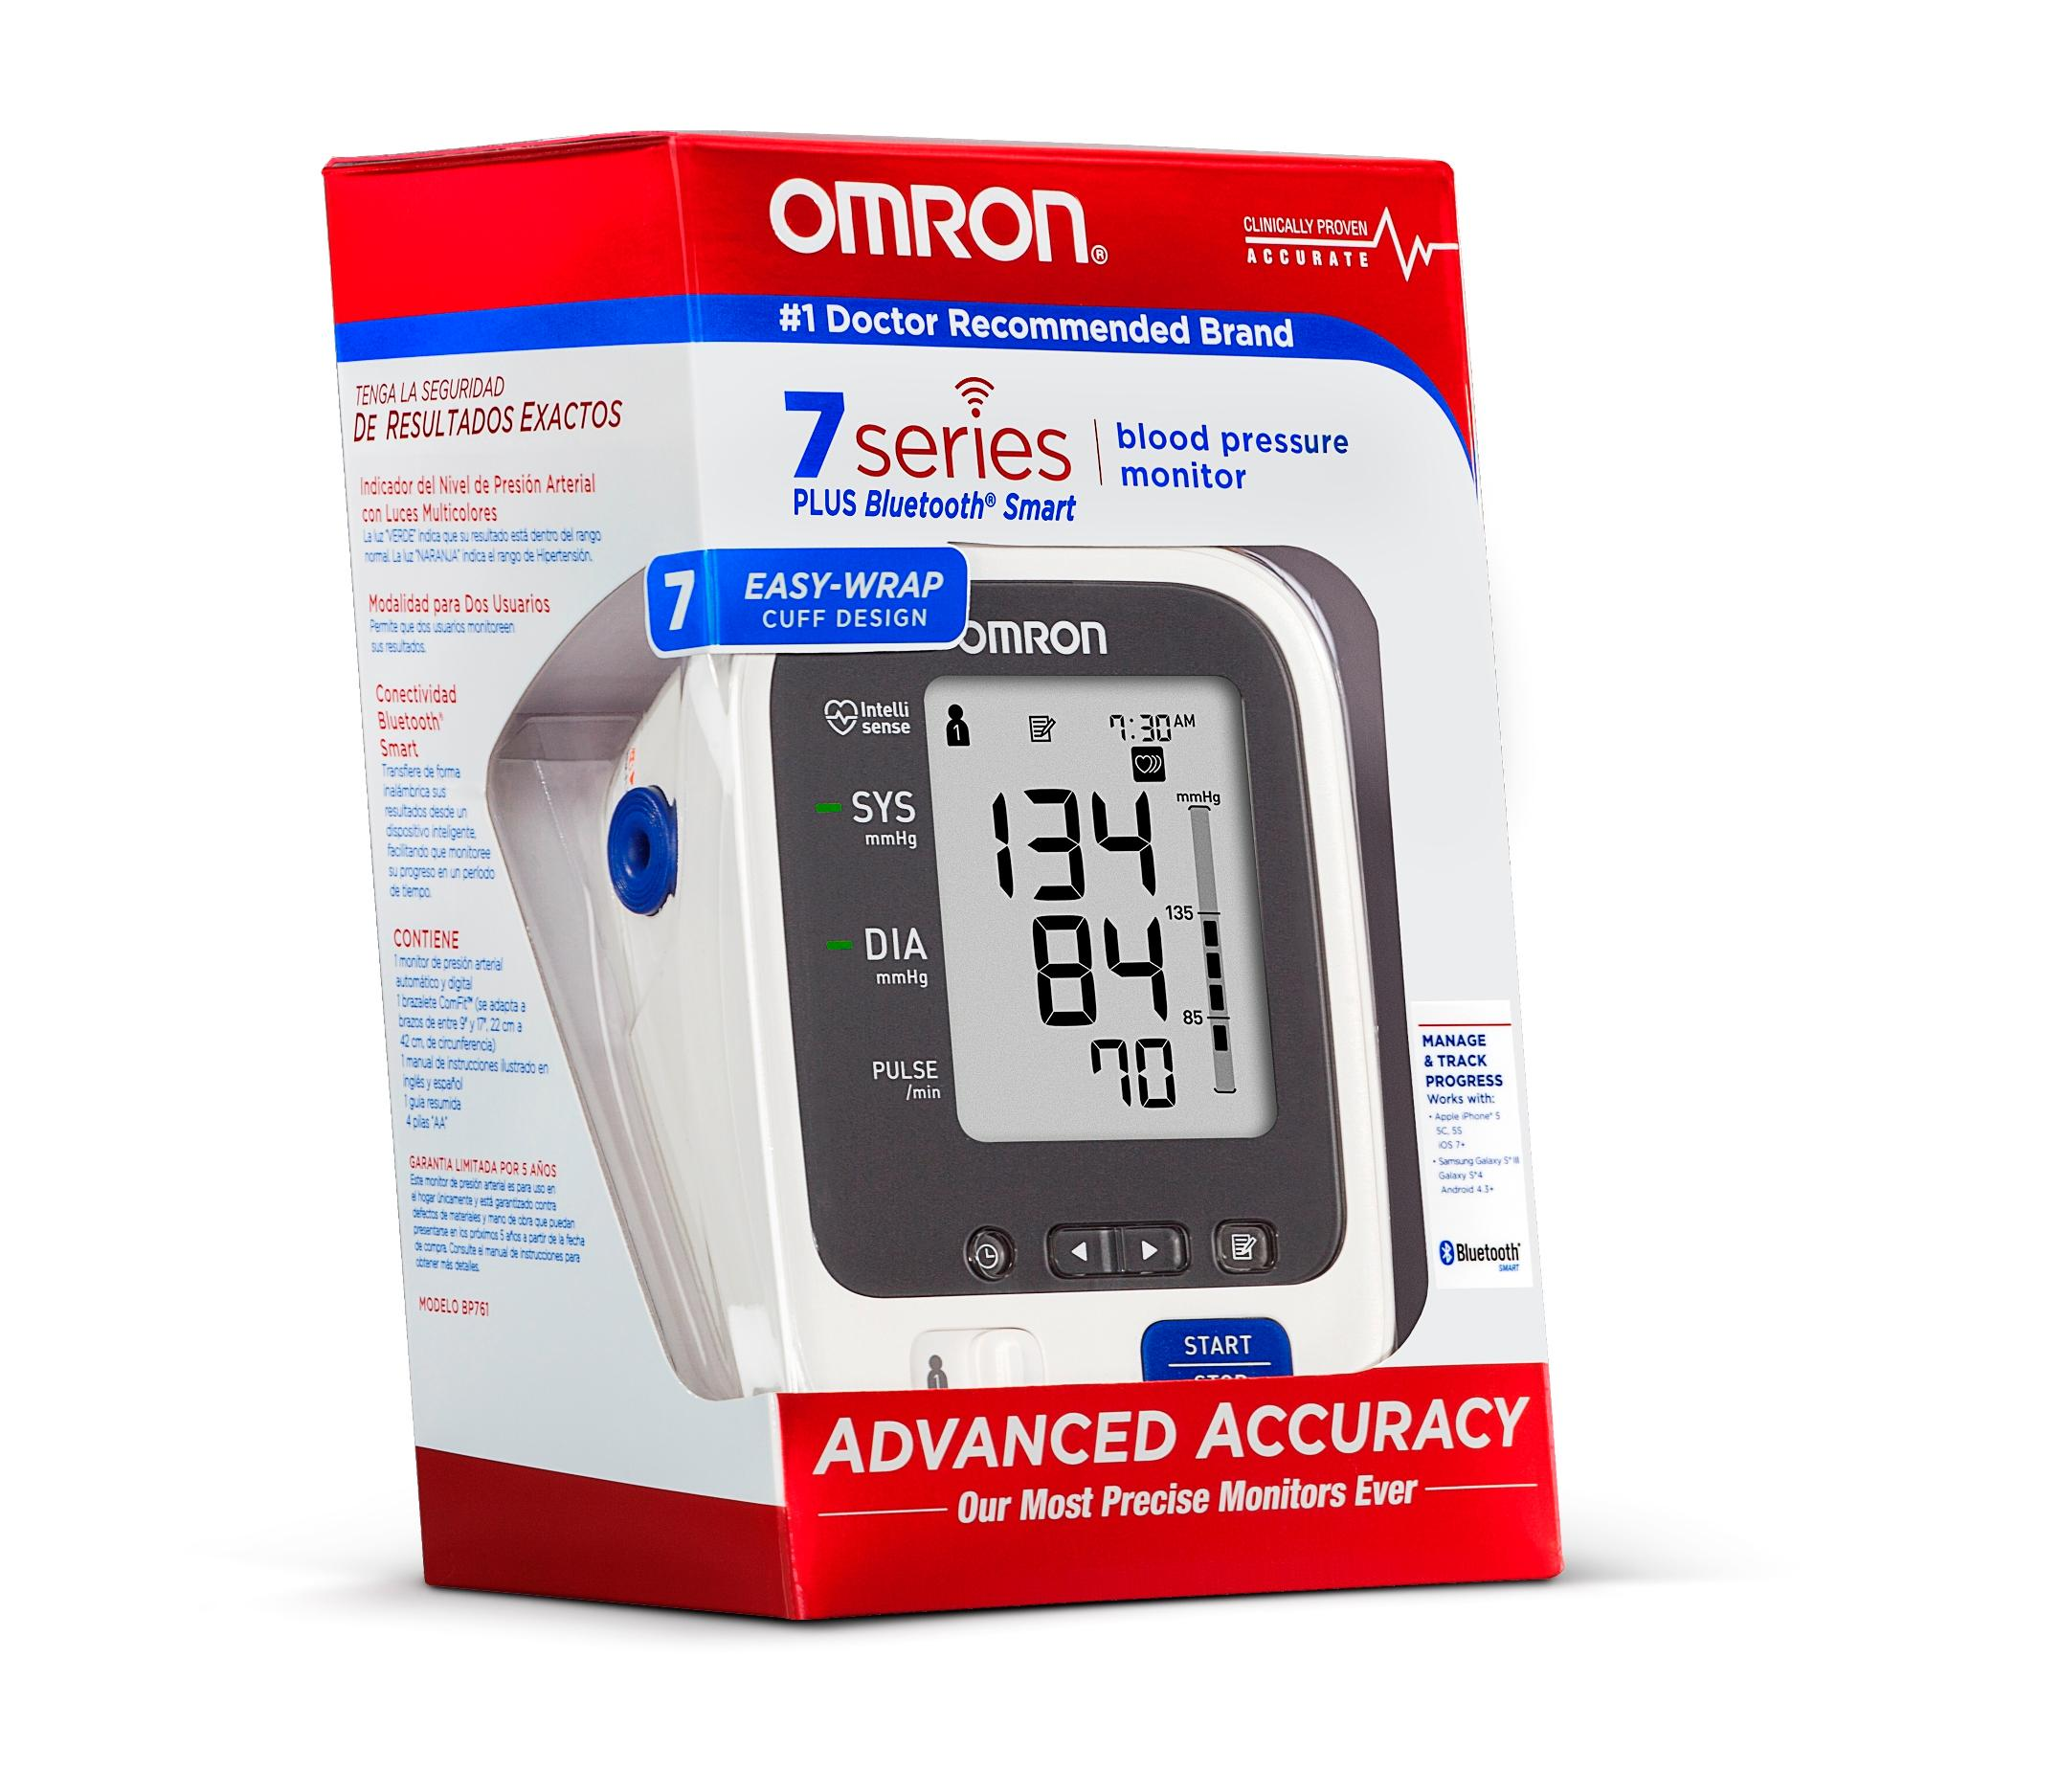 5 Best Blood Pressure Monitors To Track Your Heart Health Manual Guide